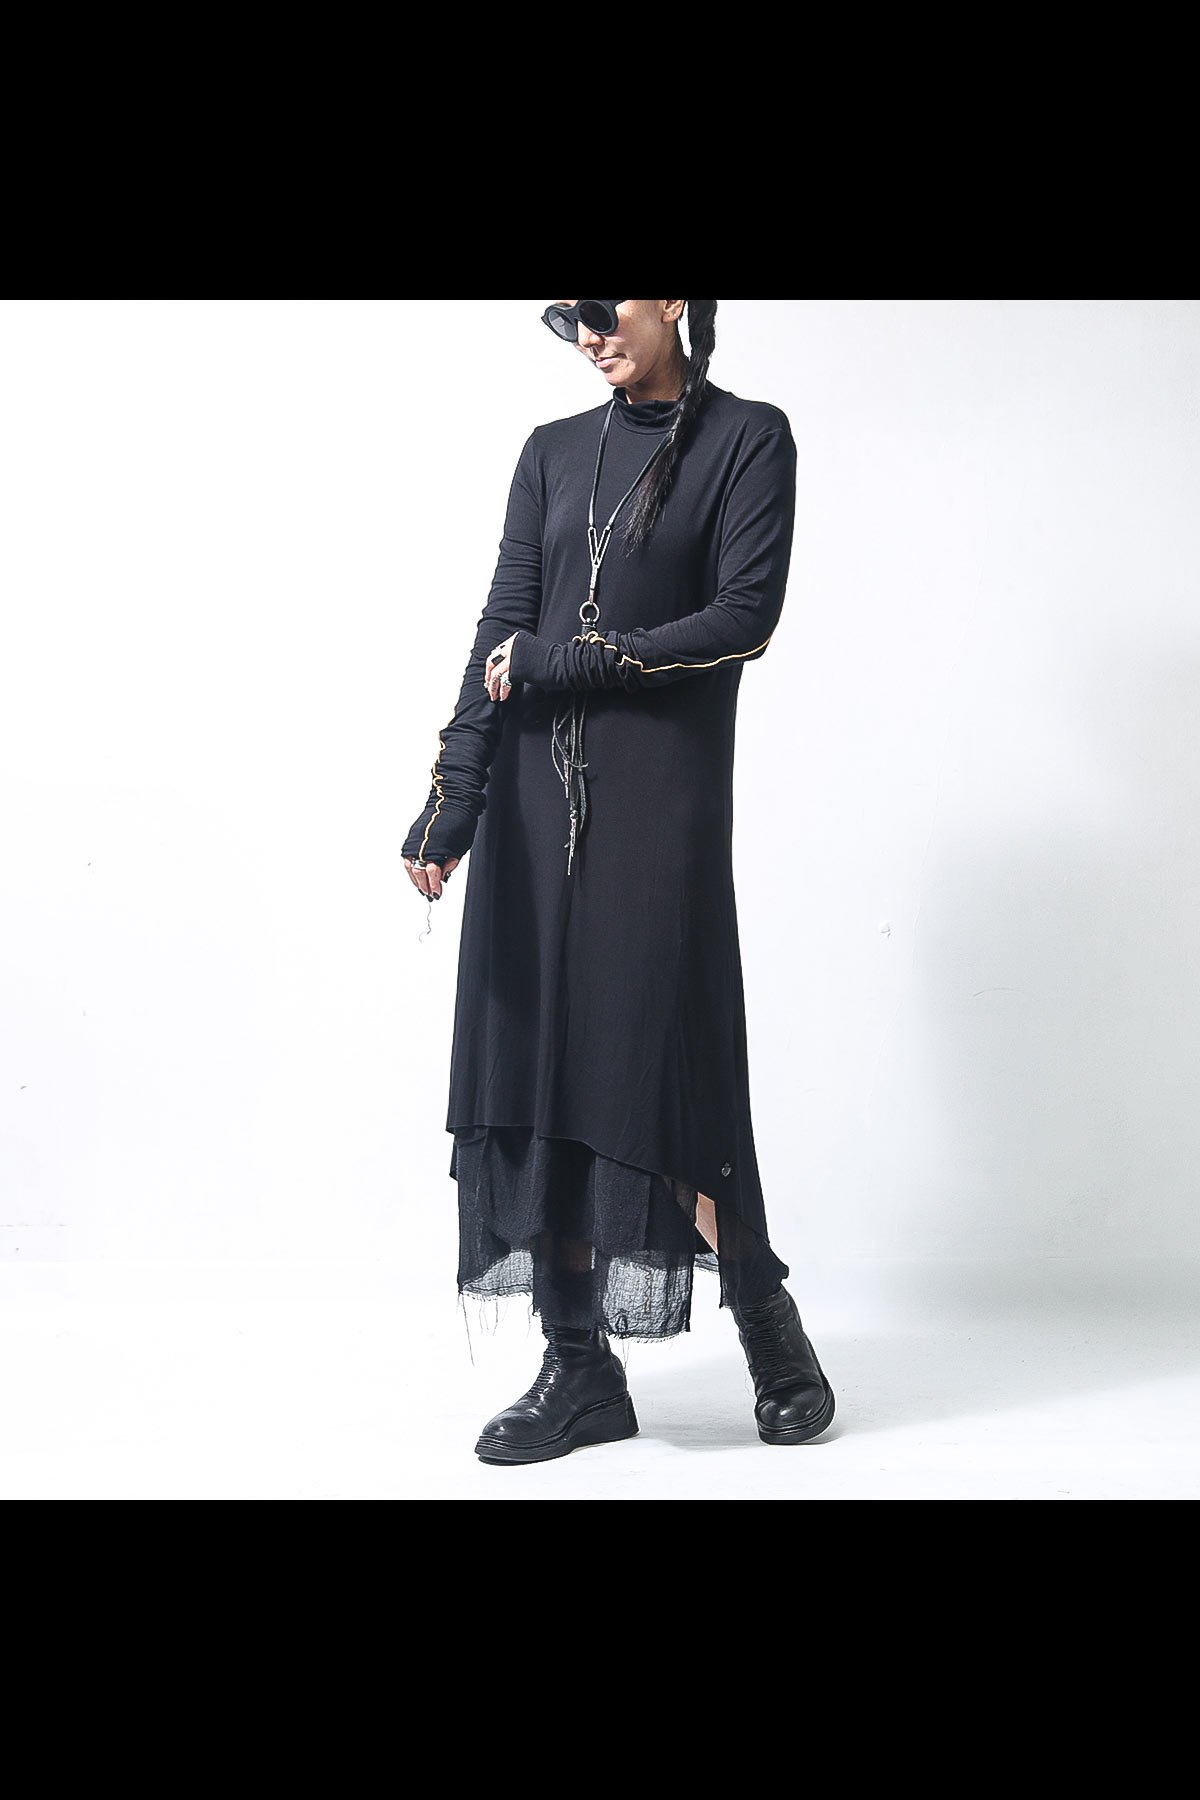 <img class='new_mark_img1' src='https://img.shop-pro.jp/img/new/icons56.gif' style='border:none;display:inline;margin:0px;padding:0px;width:auto;' />STITCHED ASYMMETRIC DRESS D61_BLACK